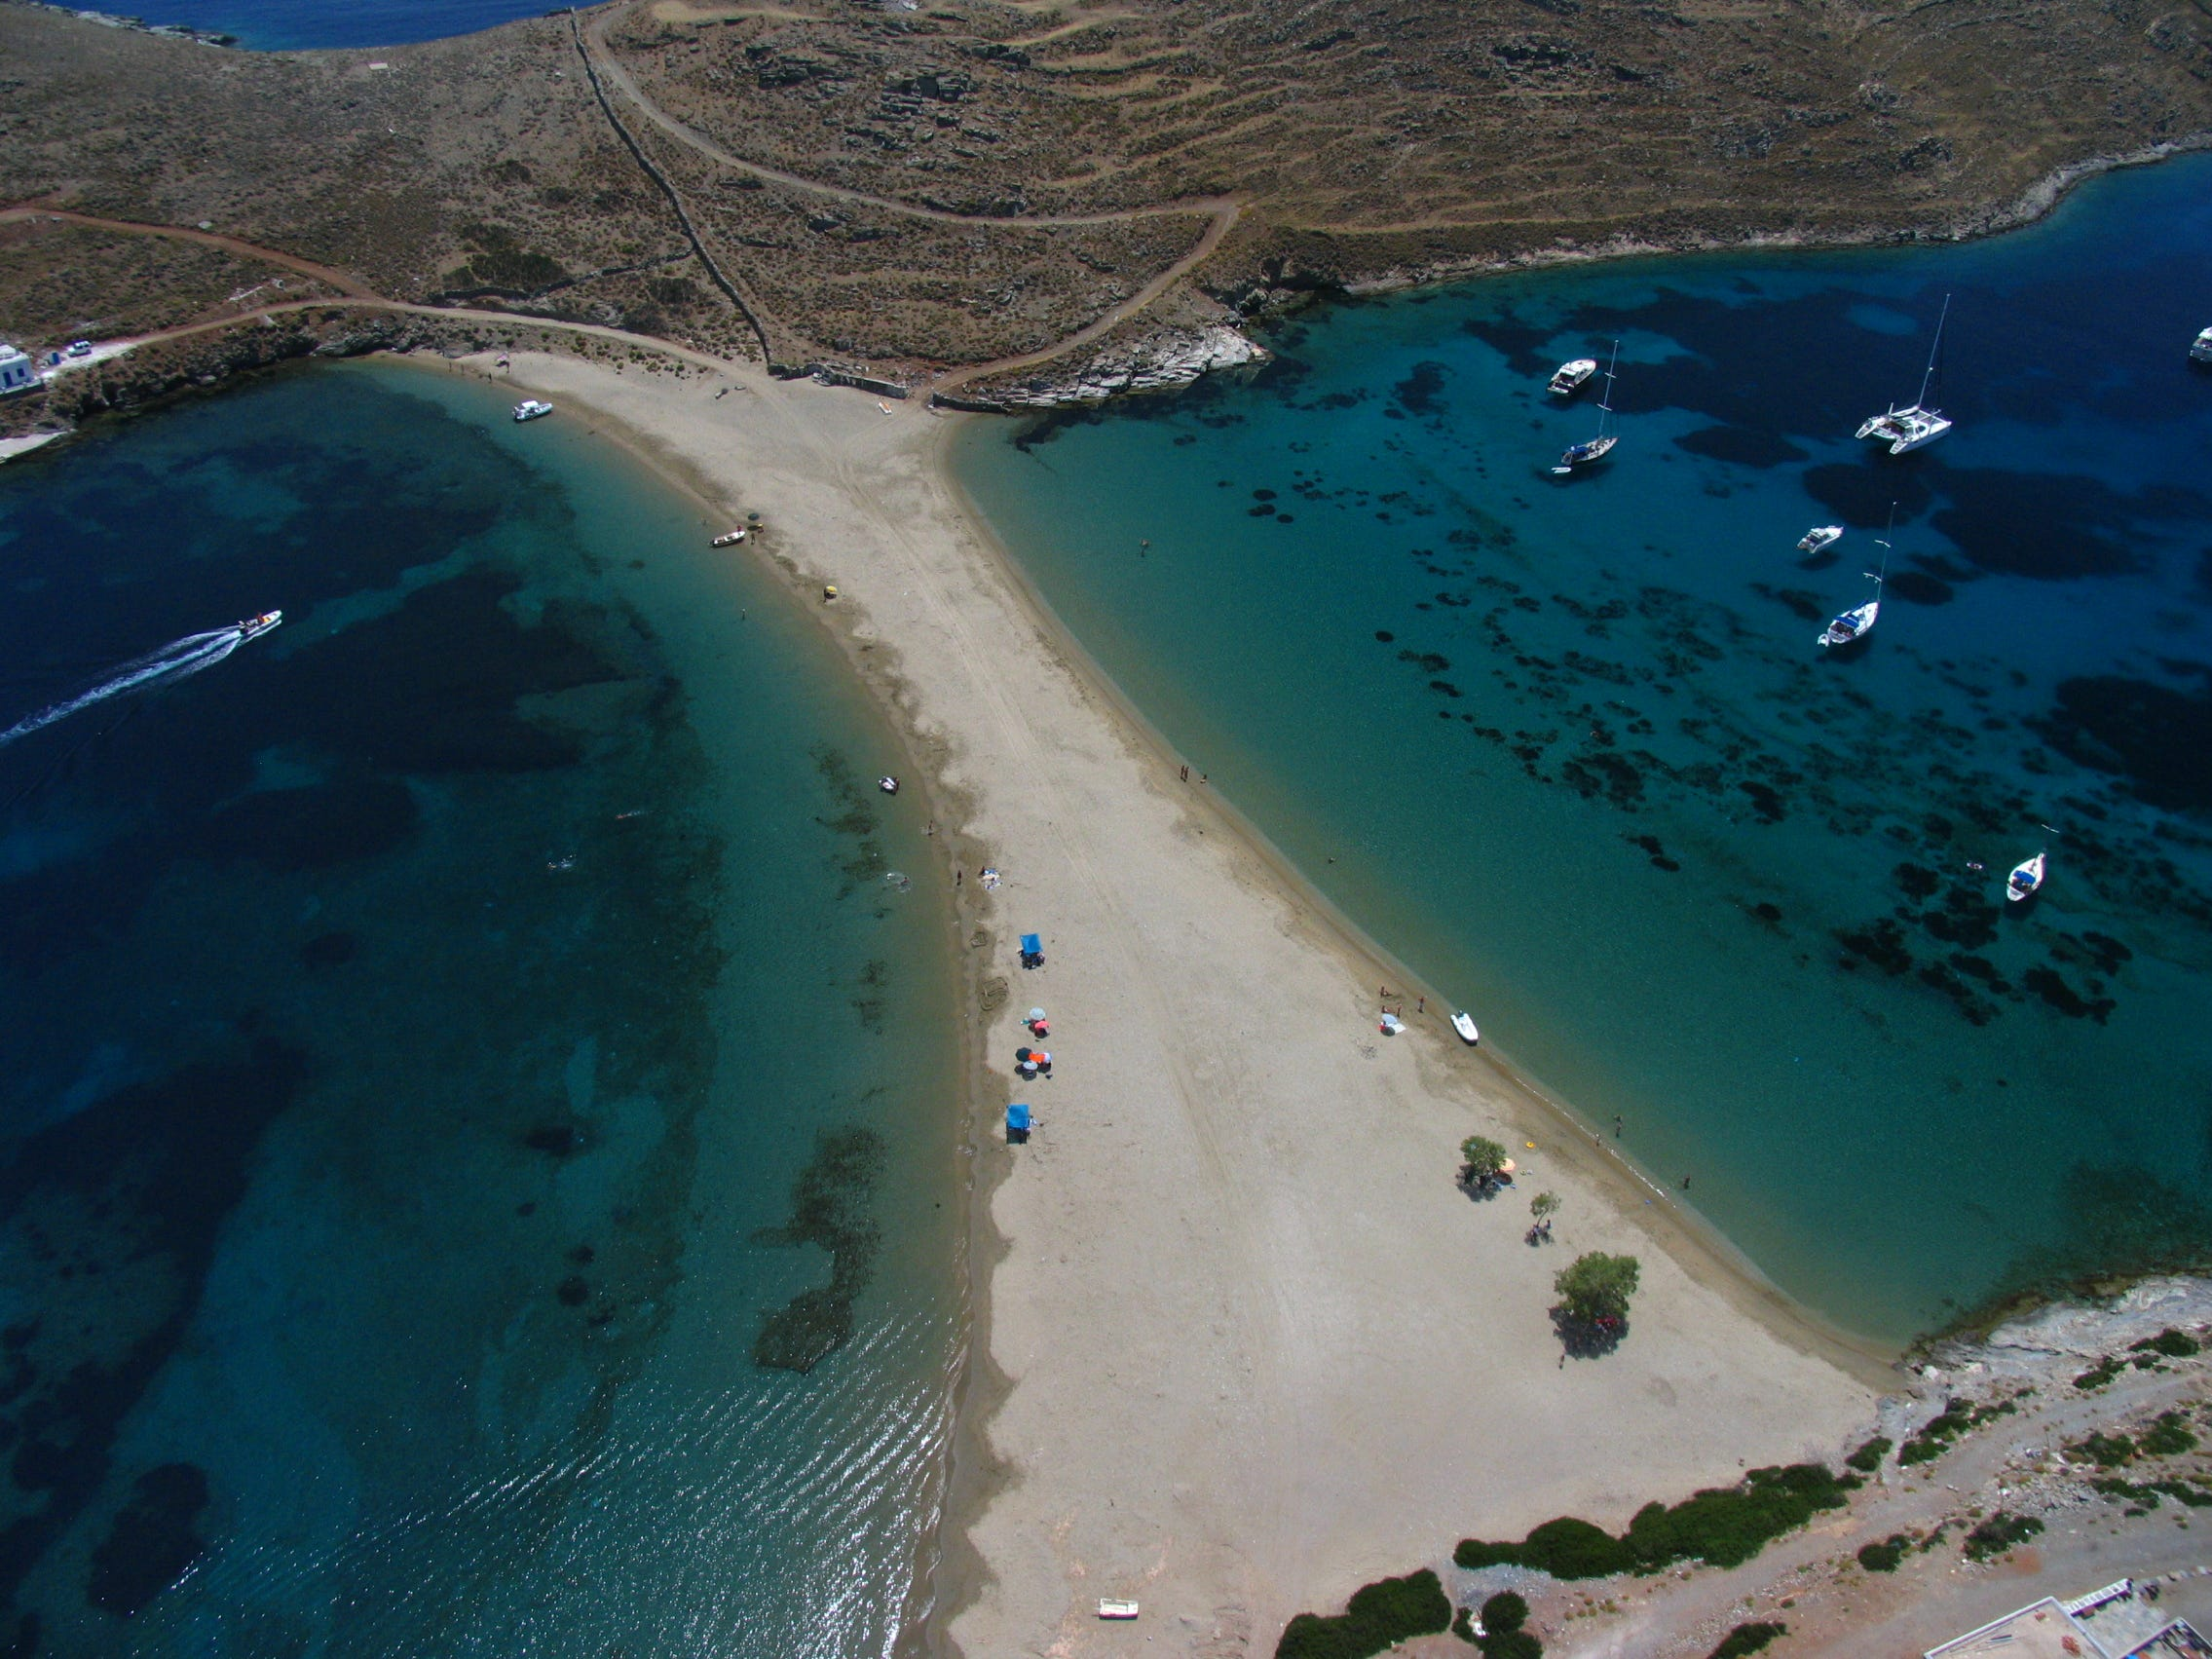 Kythnos offers some of the most isolated beaches in all of the Cyclades. The most eye-catching beach on the island is the double-sided Kolona.